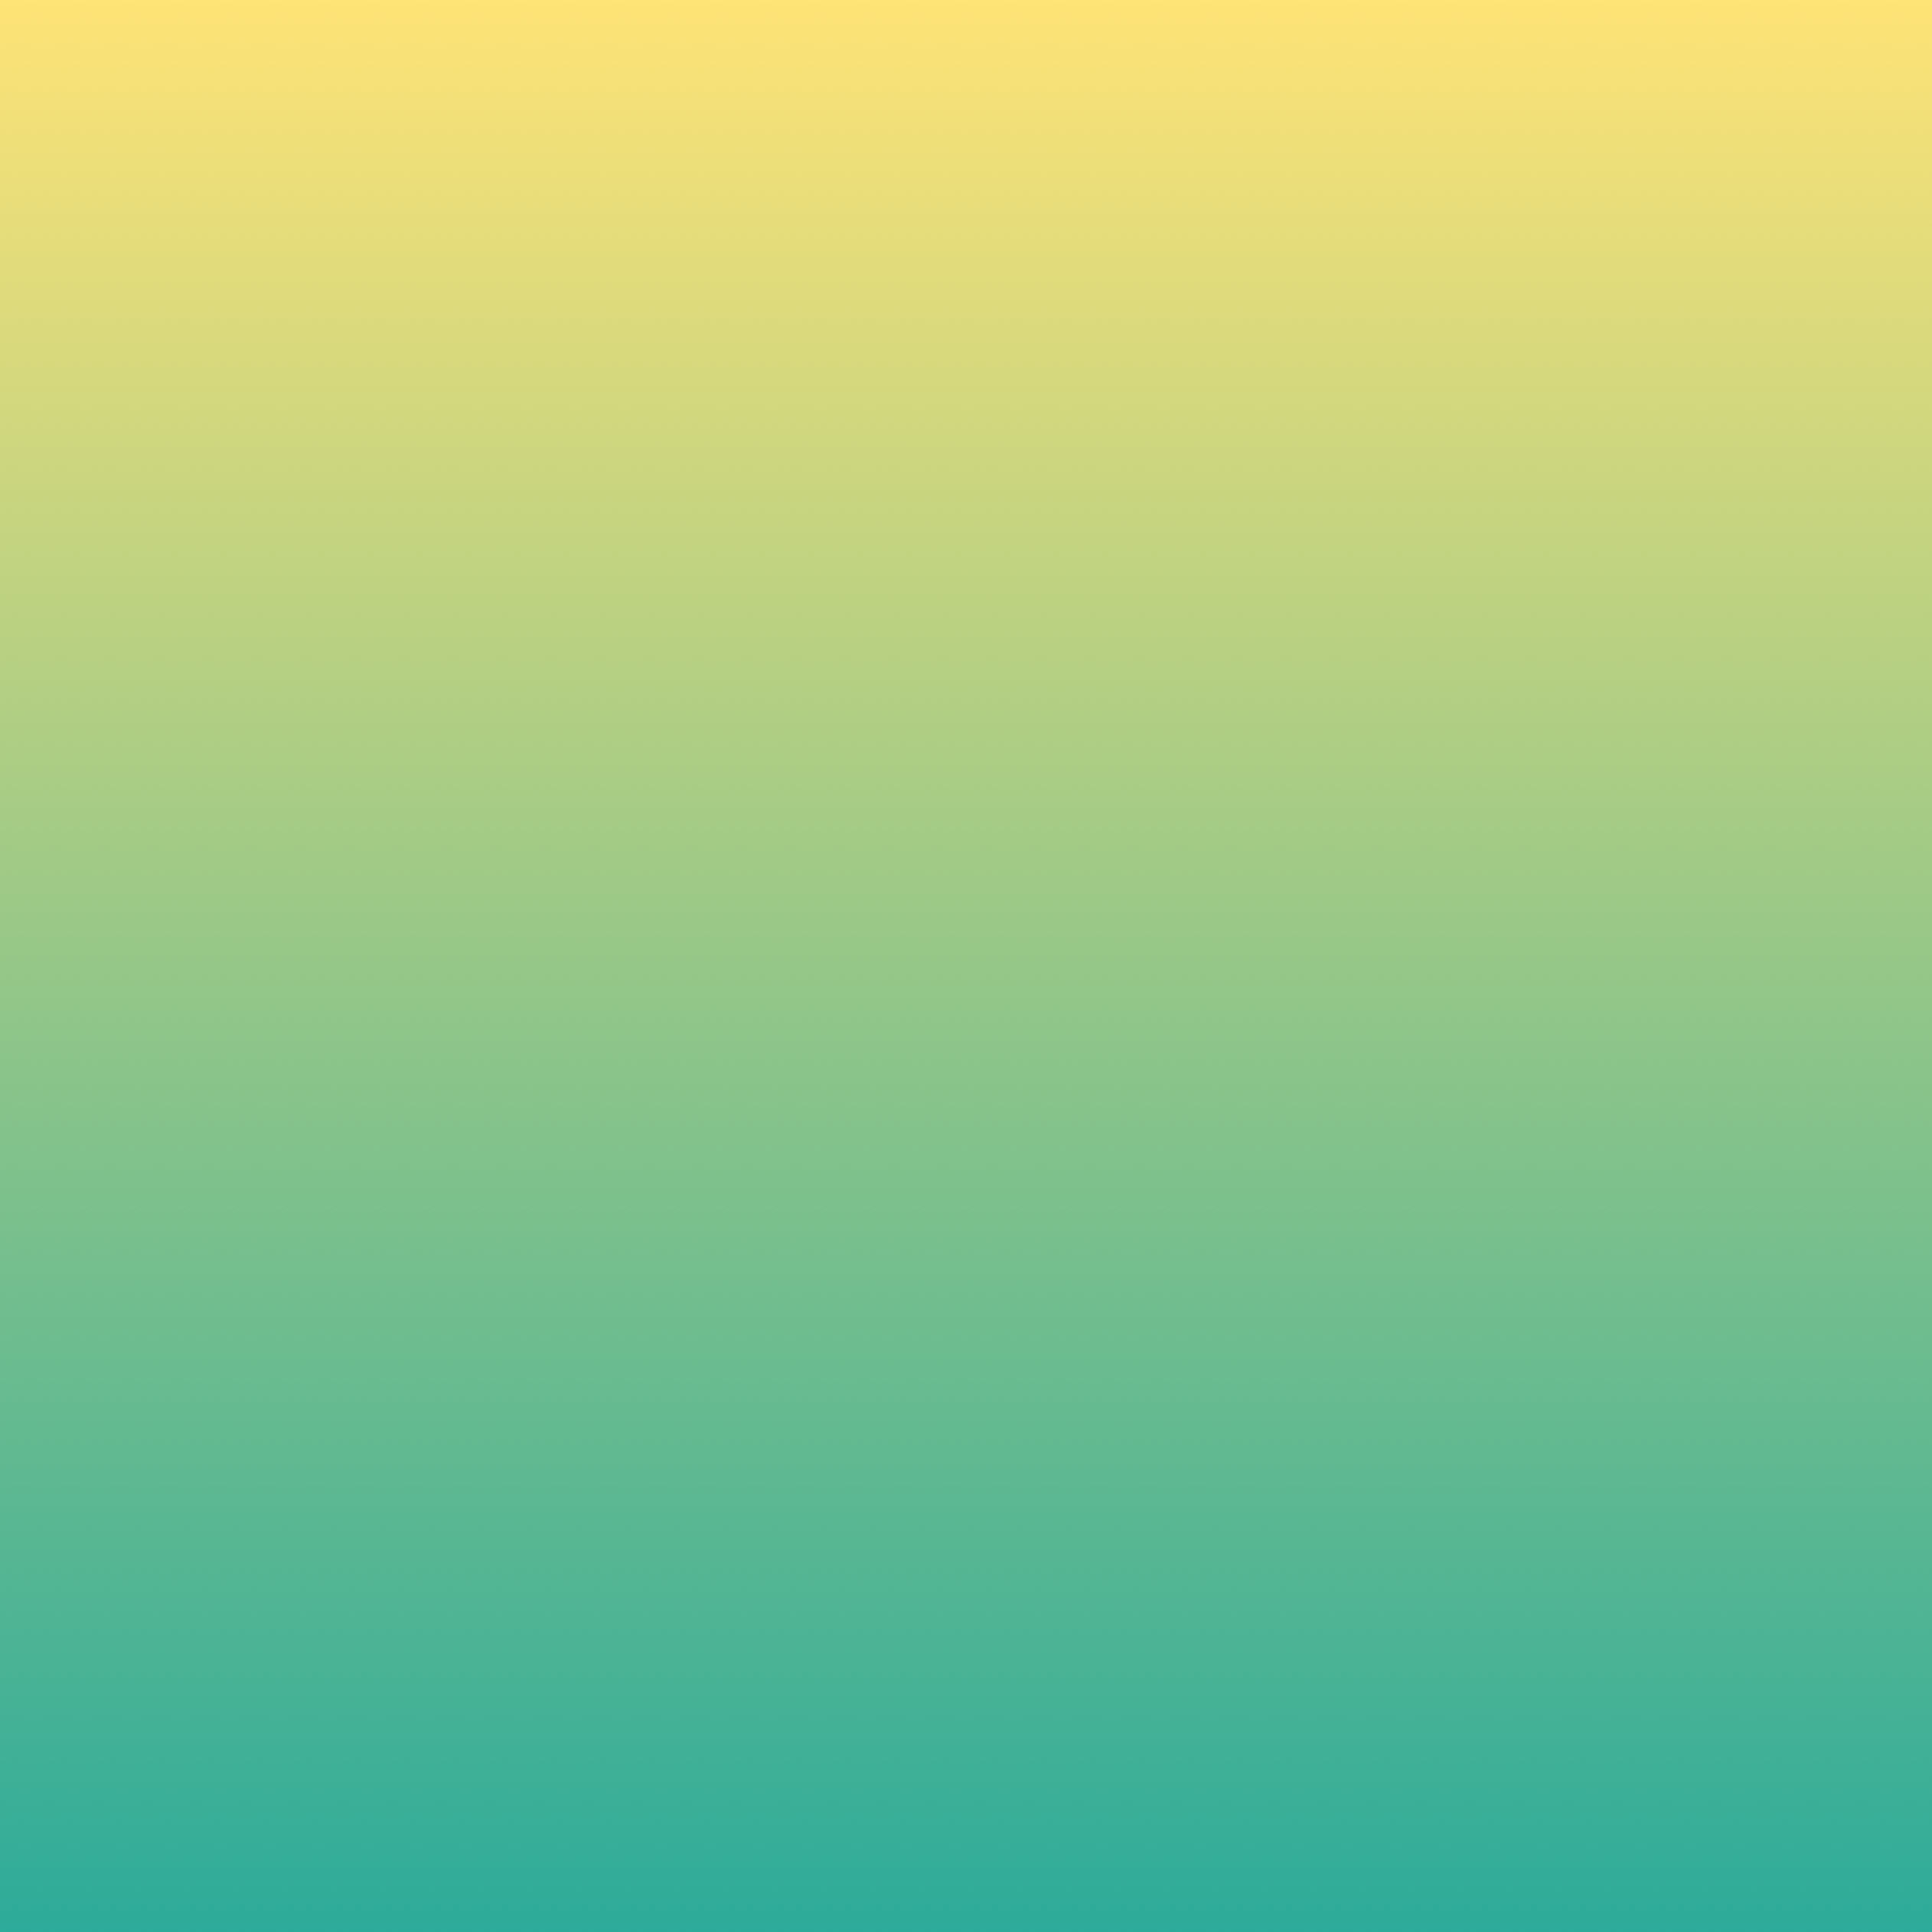 82654 free download Turquoise wallpapers for phone, Abstract, Gradient, Background, Multicolored, Motley Turquoise images and screensavers for mobile